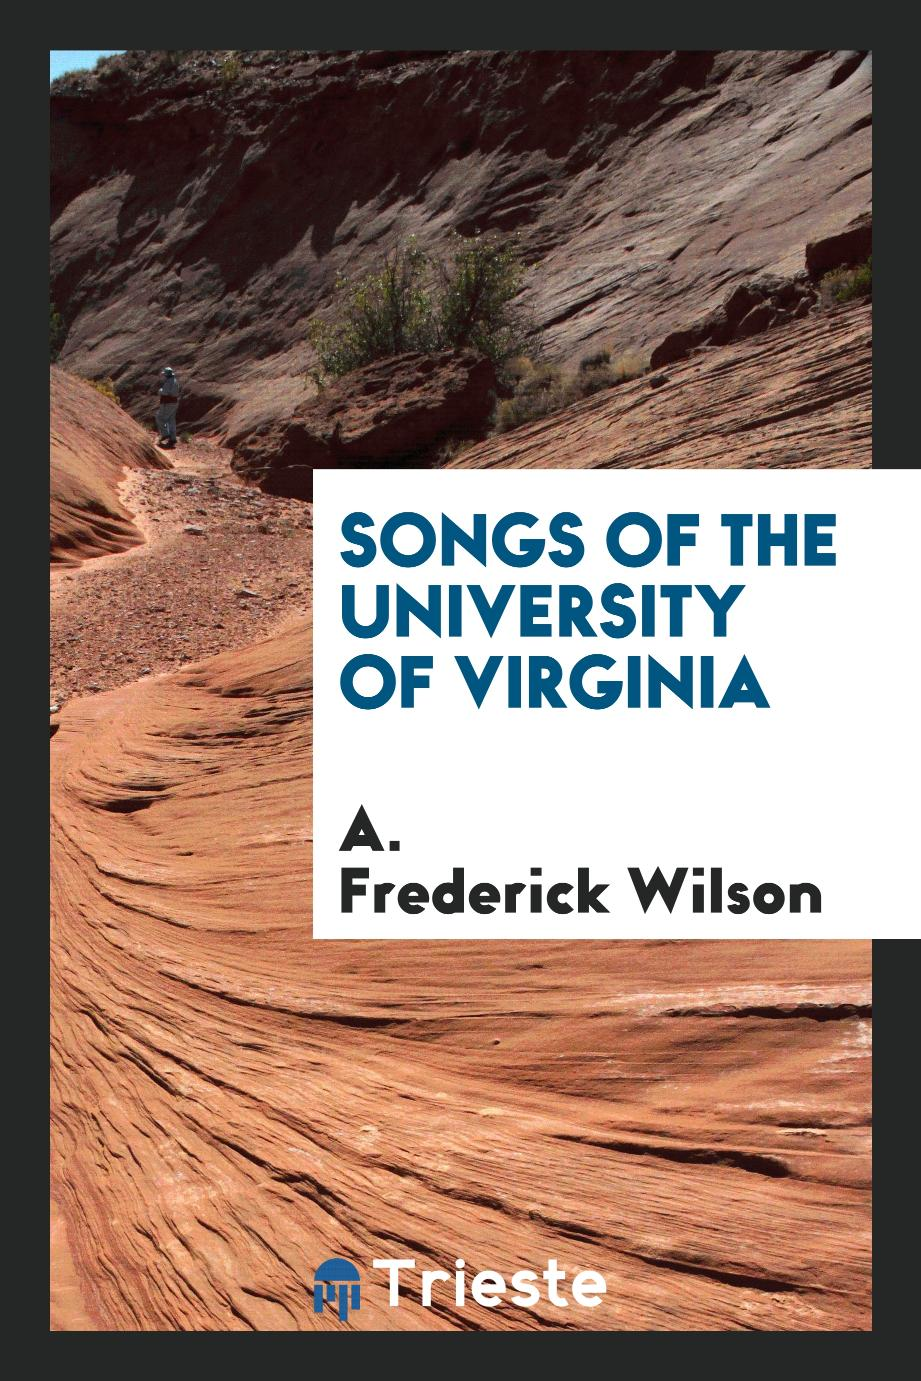 A. Frederick Wilson - Songs of the University of Virginia